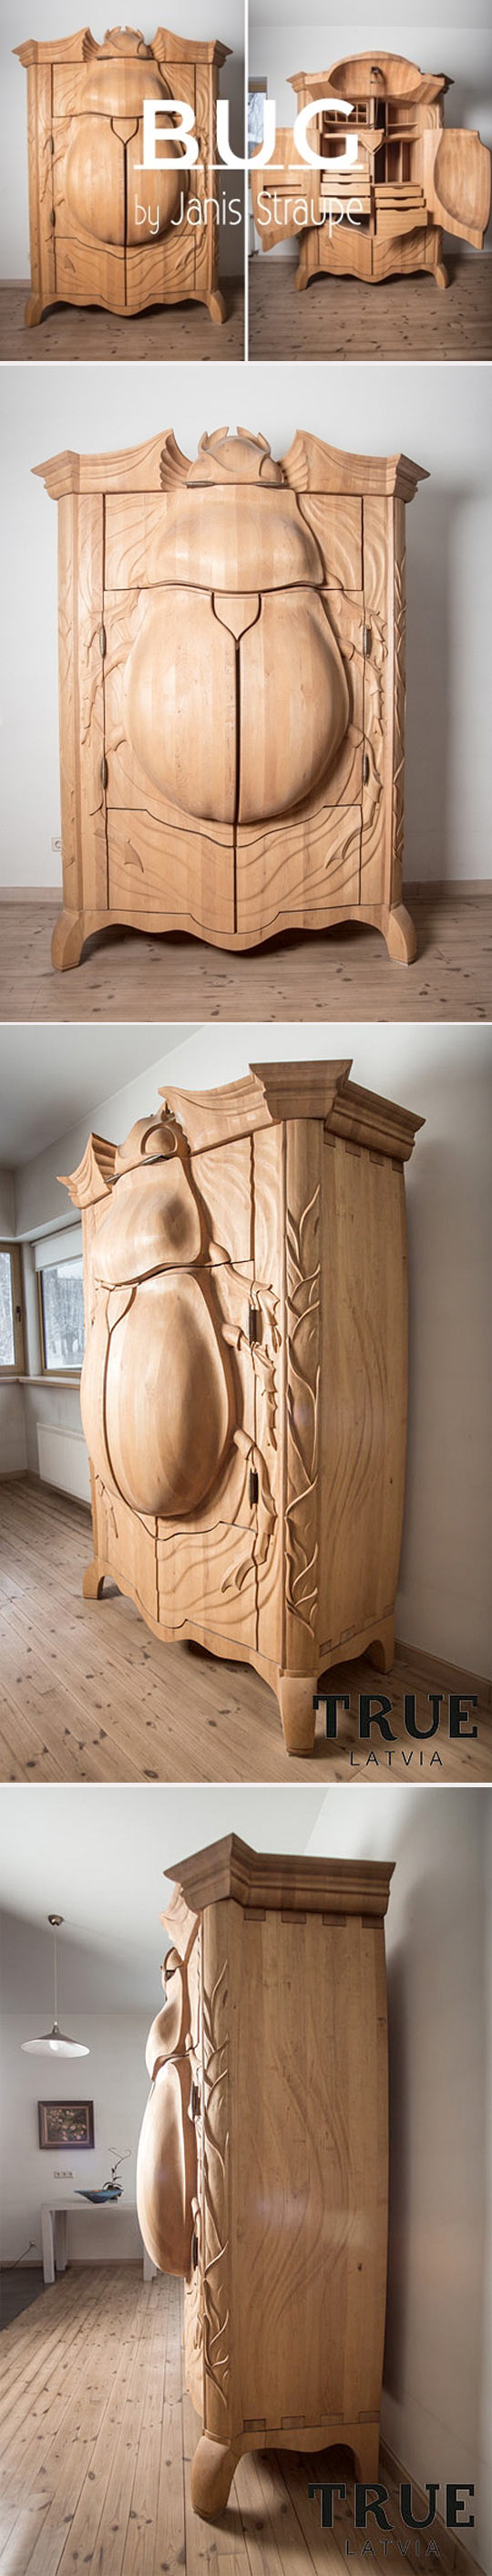 cool-wood-beetle-cabinet-carved